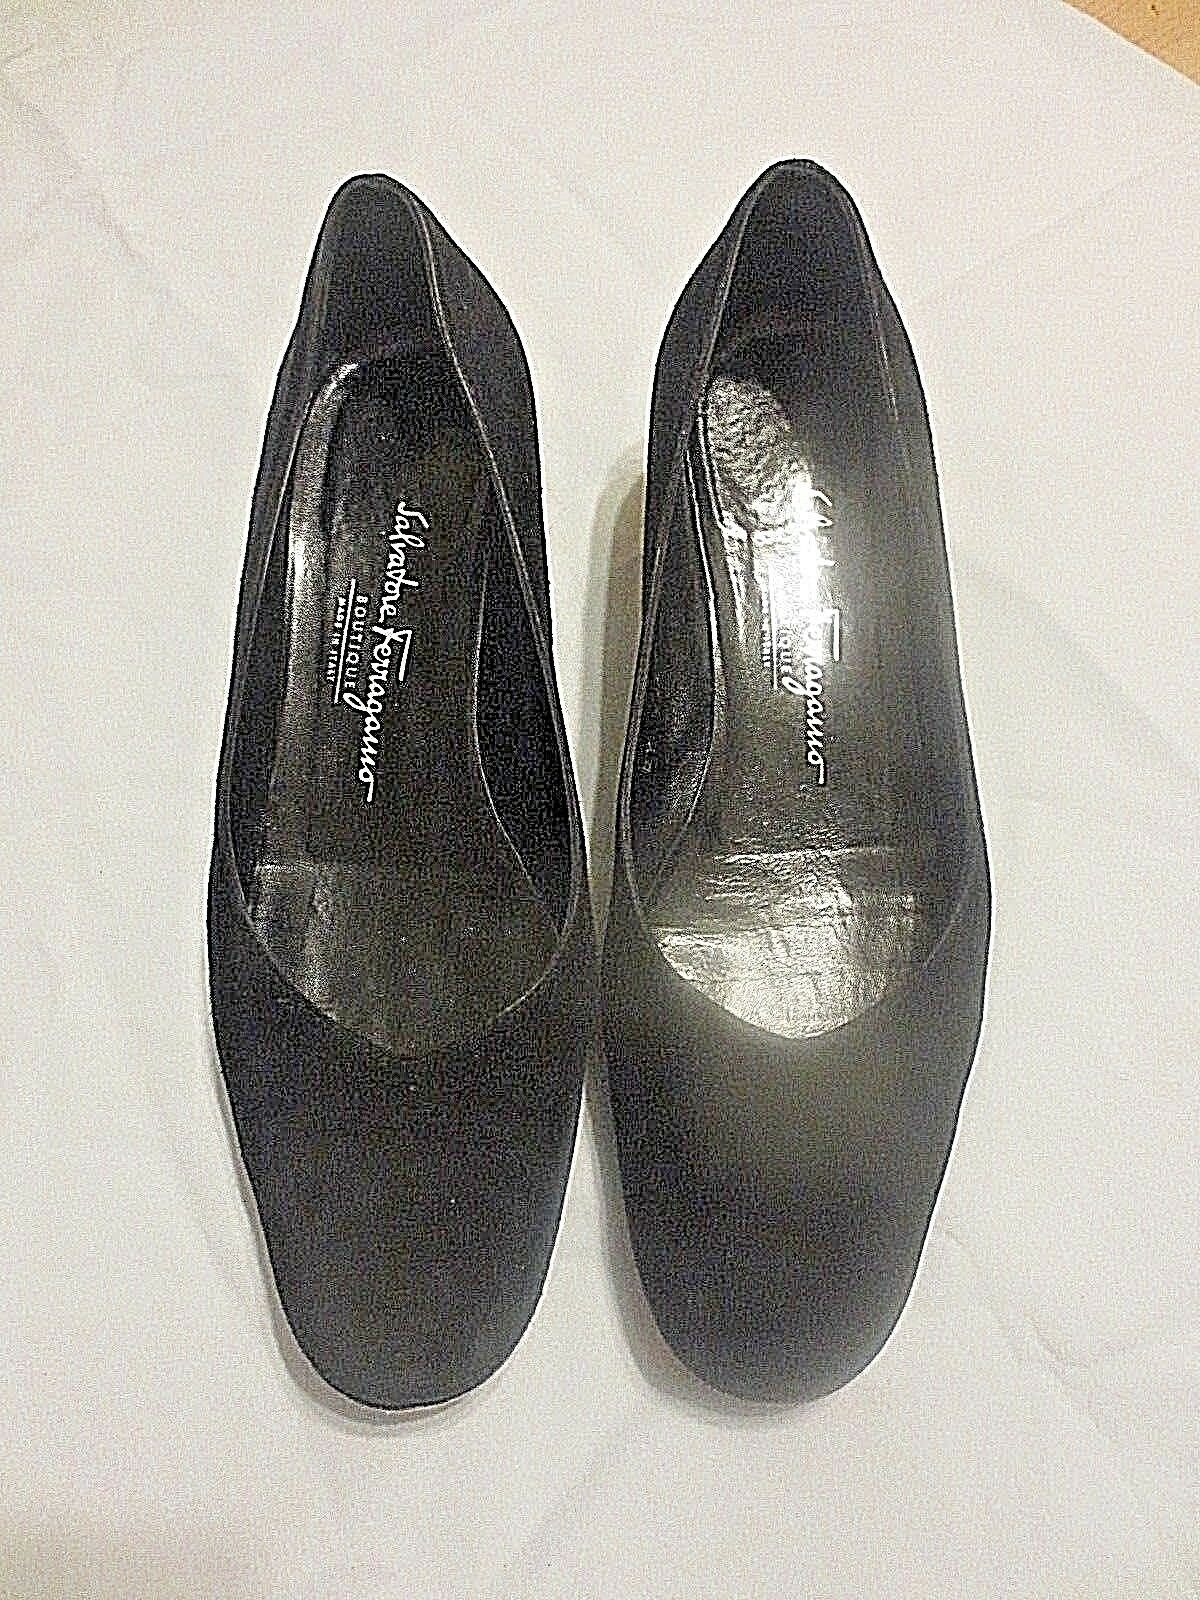 Salvatore Ferragamo Boutique Black Suede Flats Low Wedges  Sz 7 B Womens